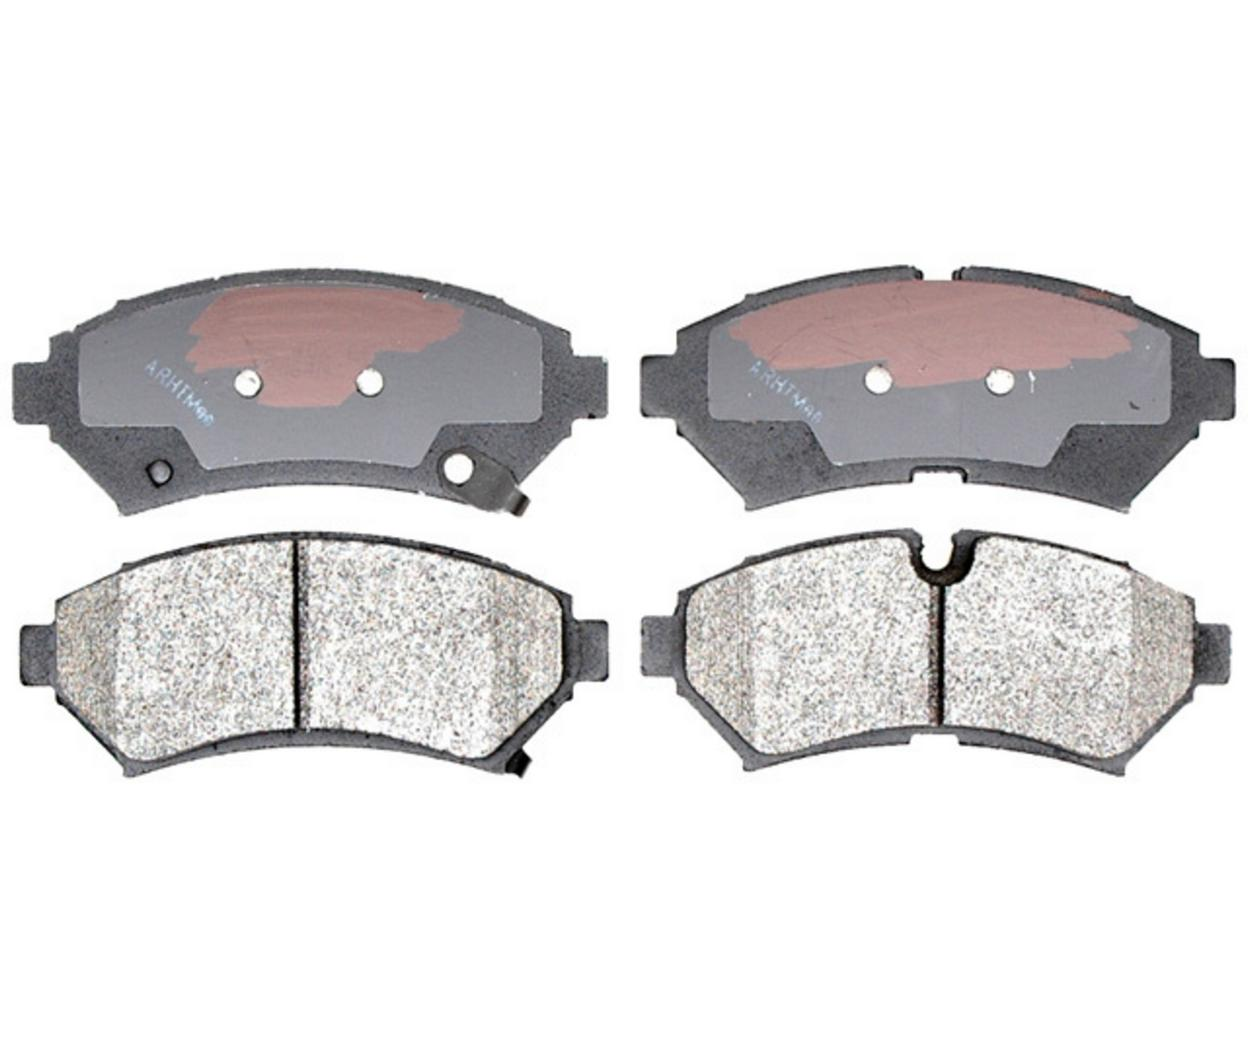 Ceramic Brake Pads with 2 Years Manufacturer Warranty Both Left and Right 2017 For Land Rover Range Rover Evoque Rear Set